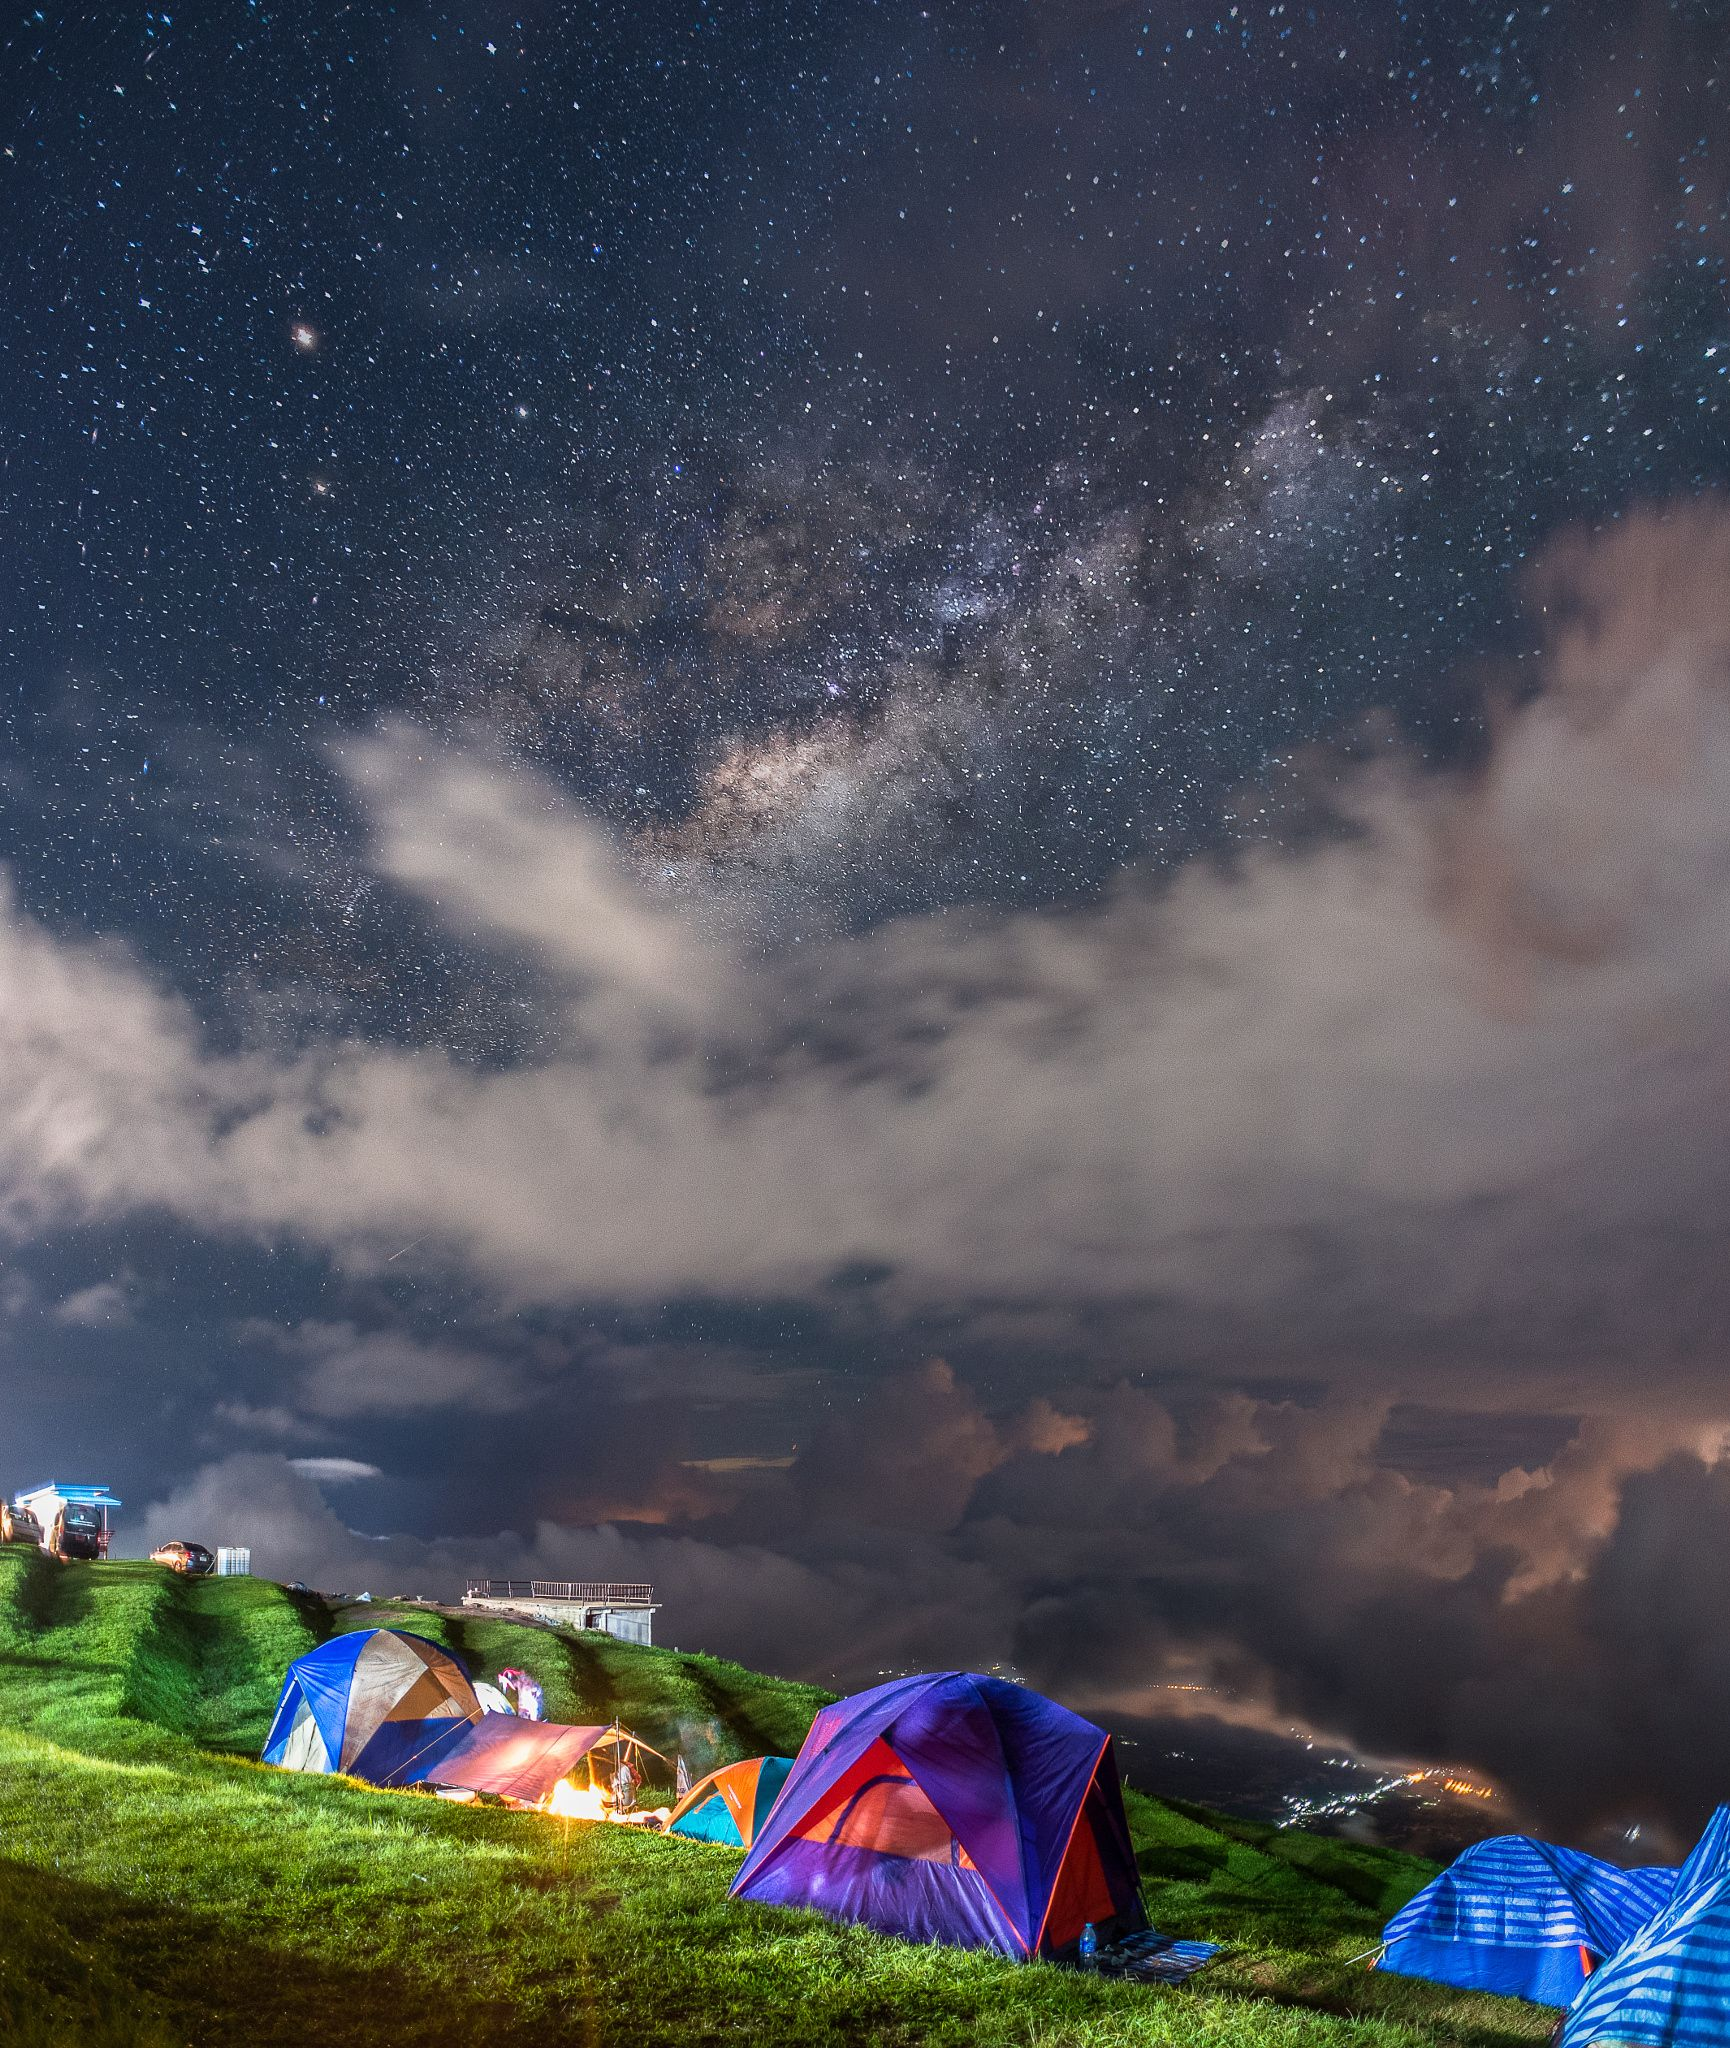 The Night Sky At The Camping Area At The